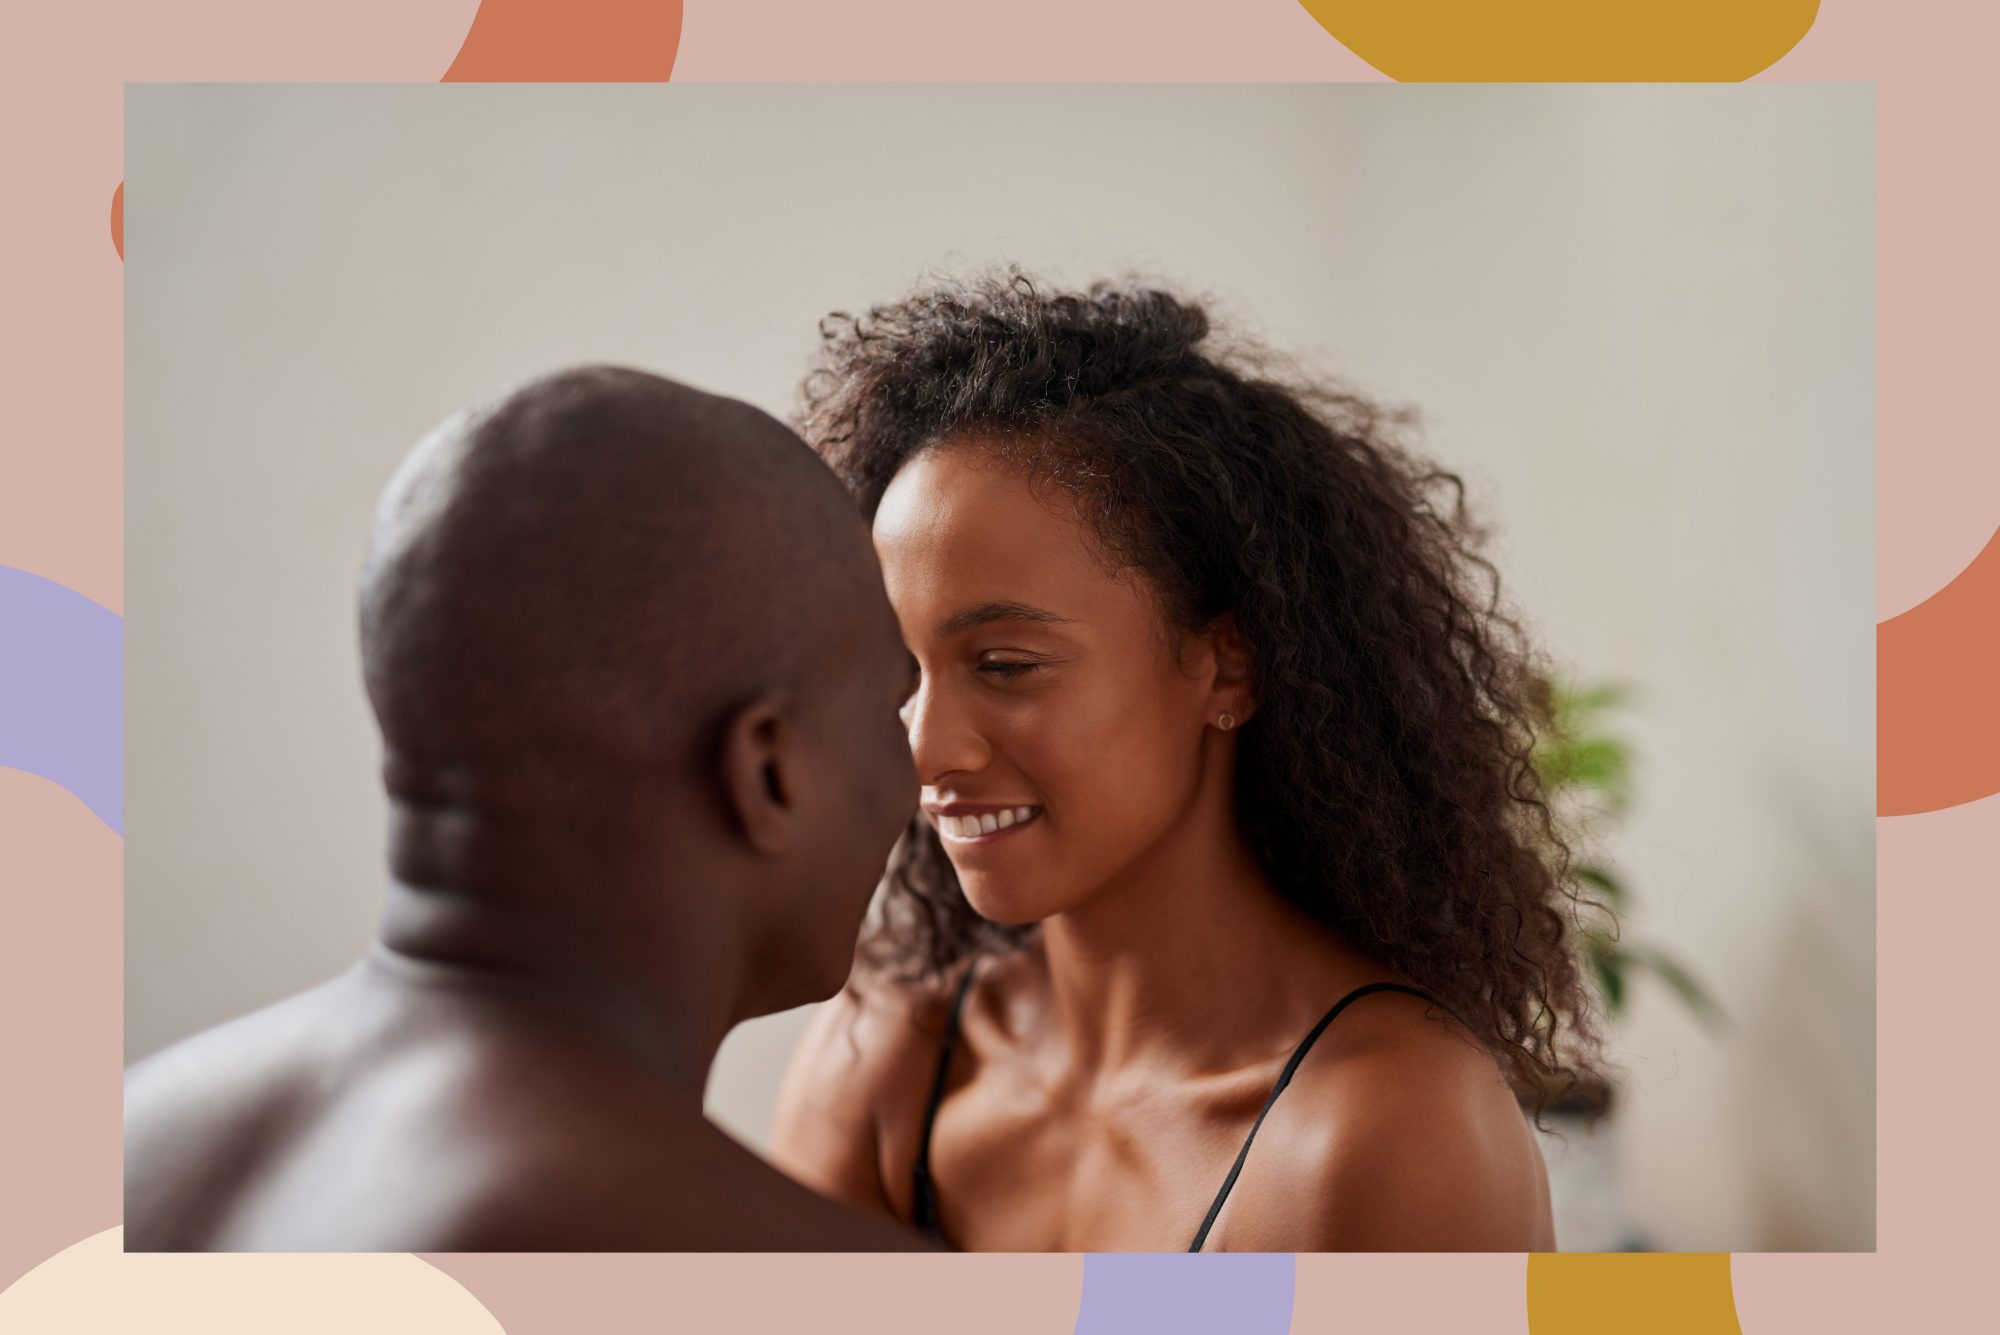 how often do couples have sex